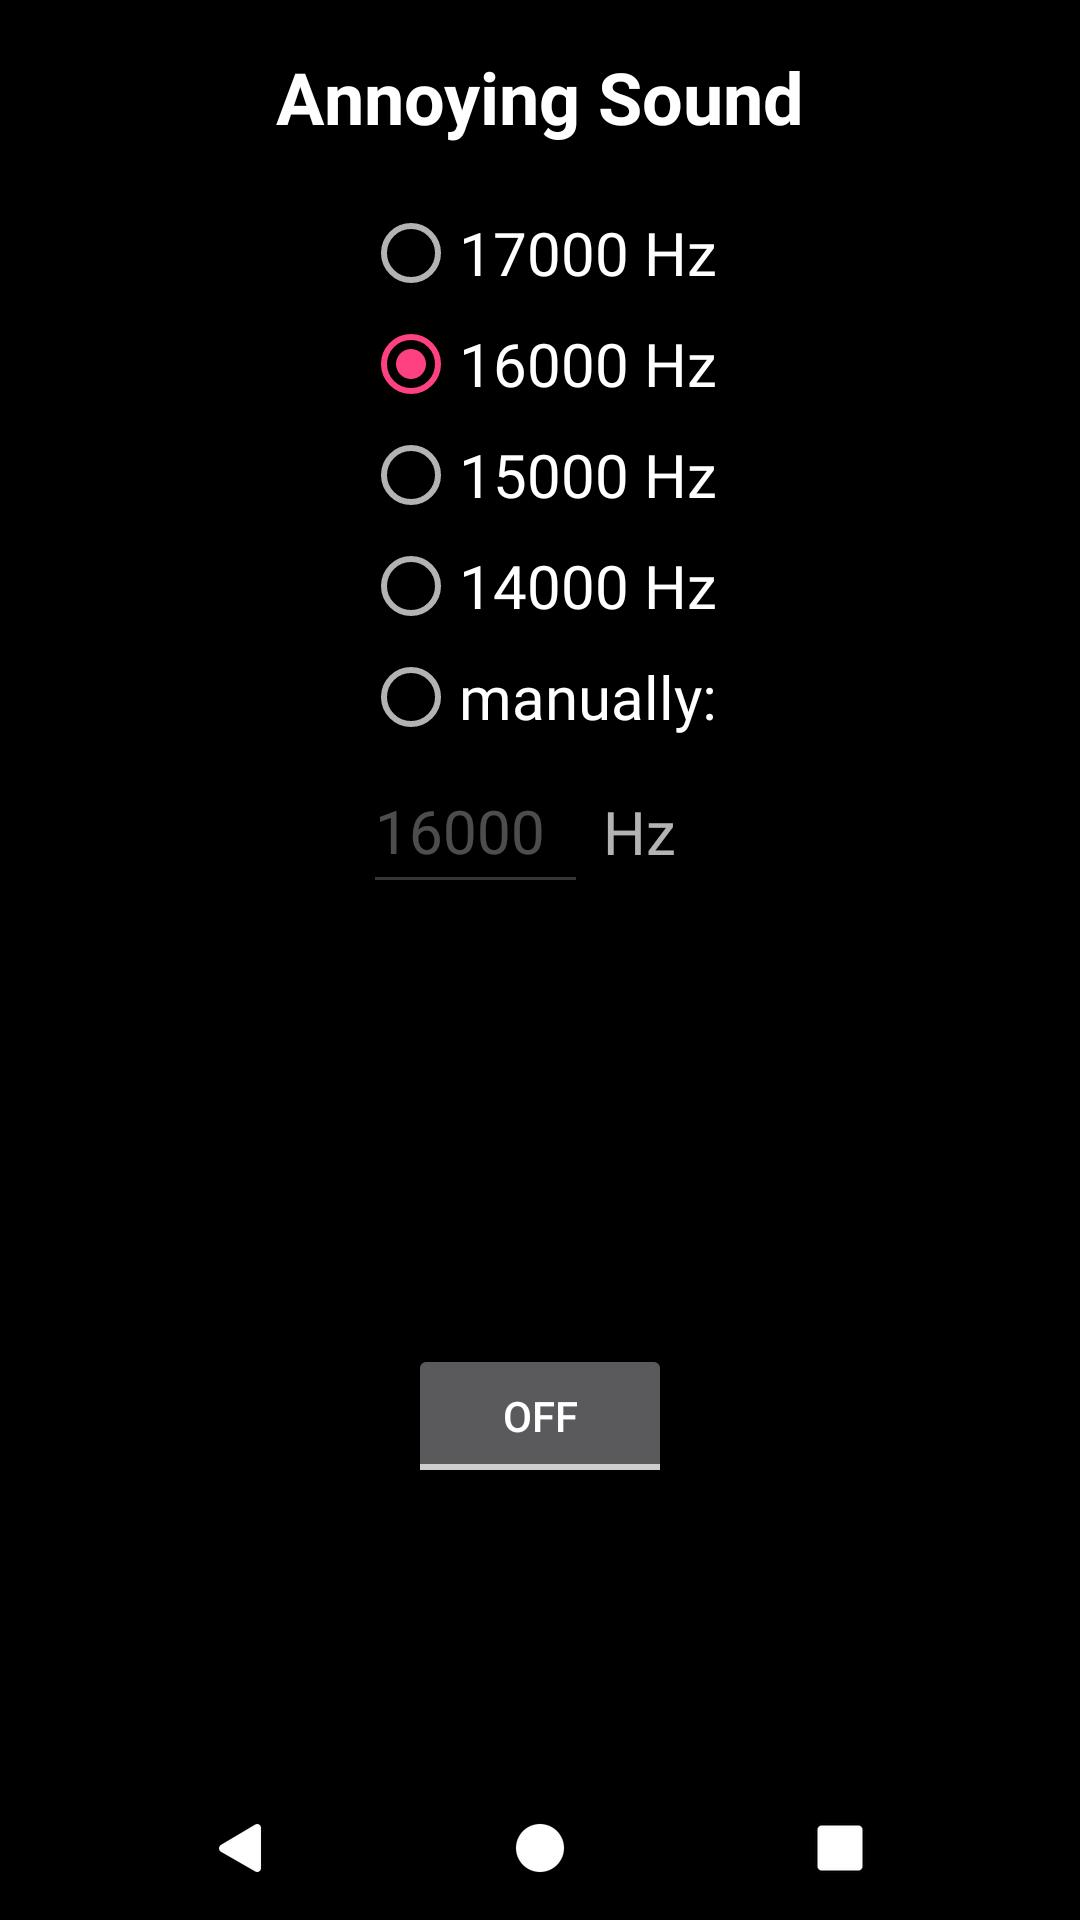 Annoying Sound for Android - APK Download